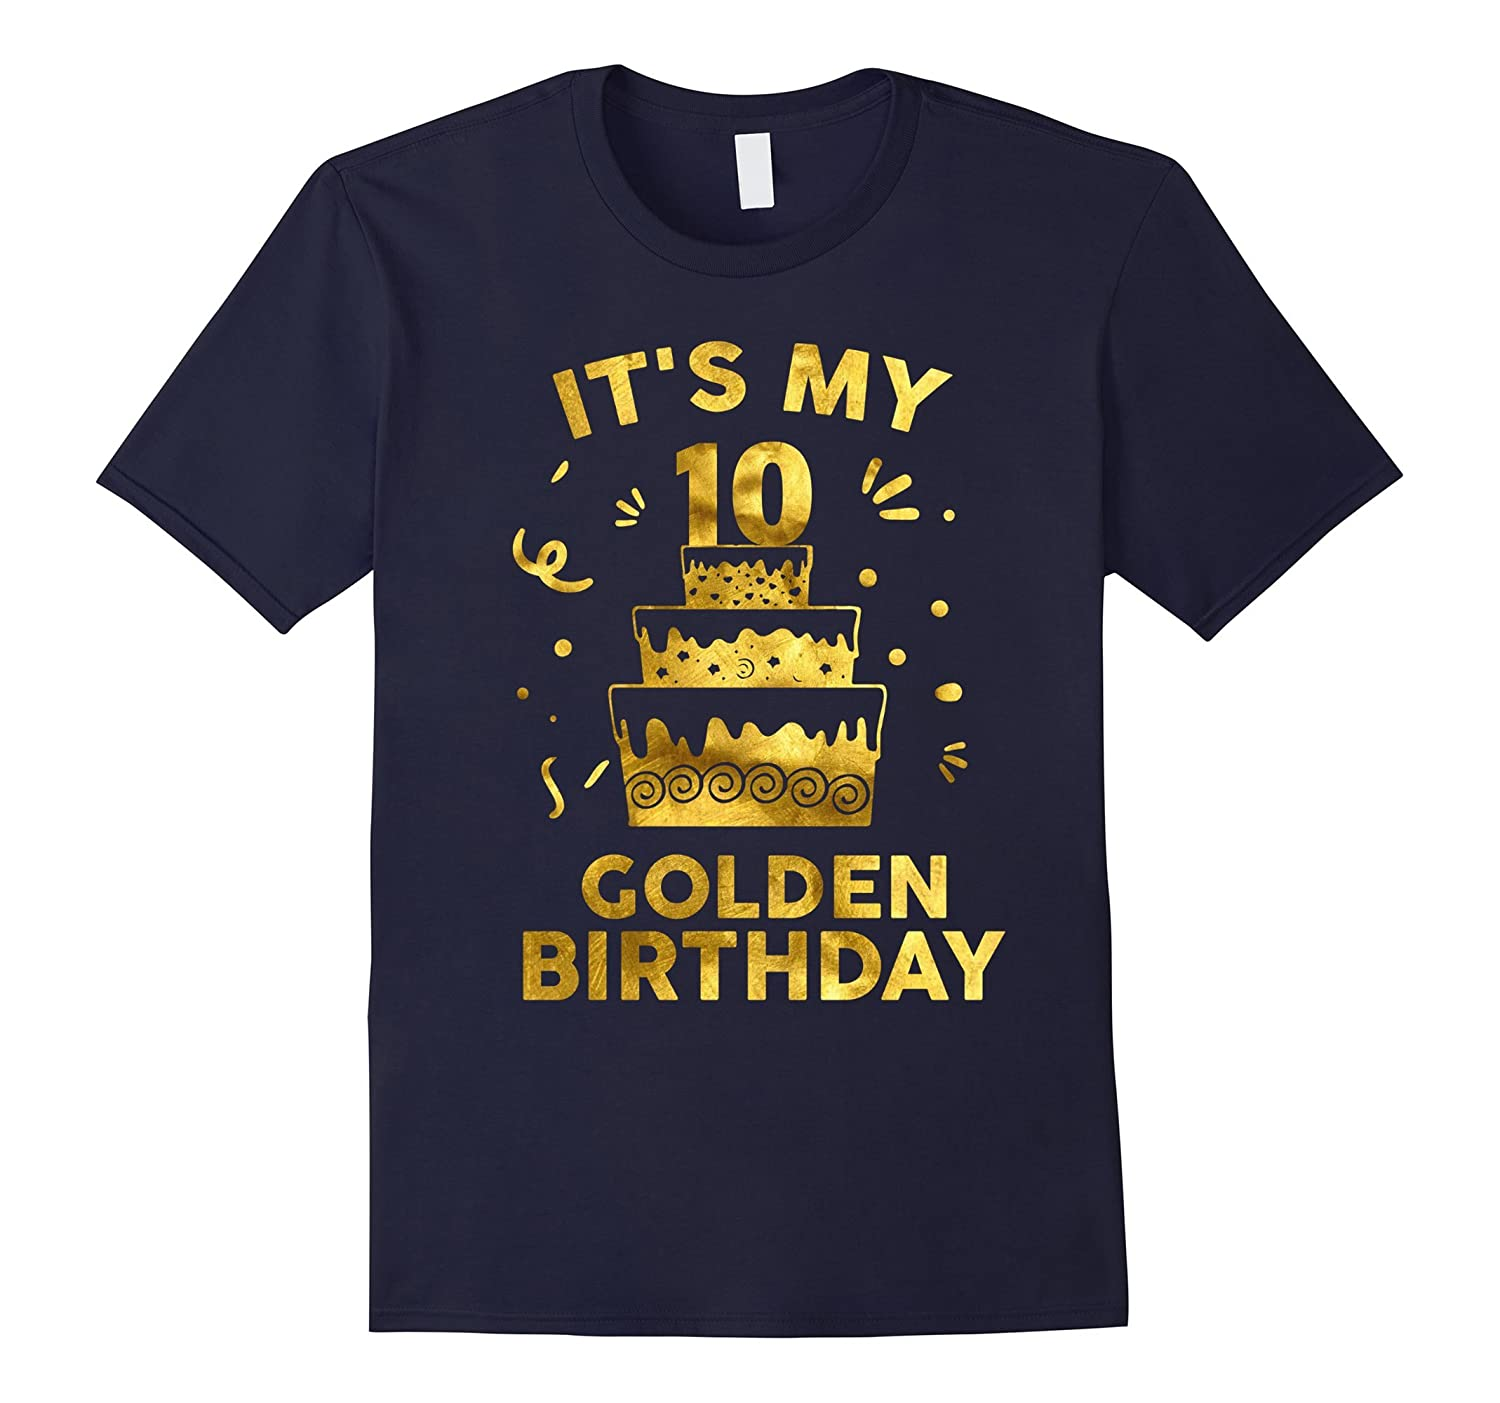 10th Birthday Shirt It's My 10th Golden Birthday Vintage-RT